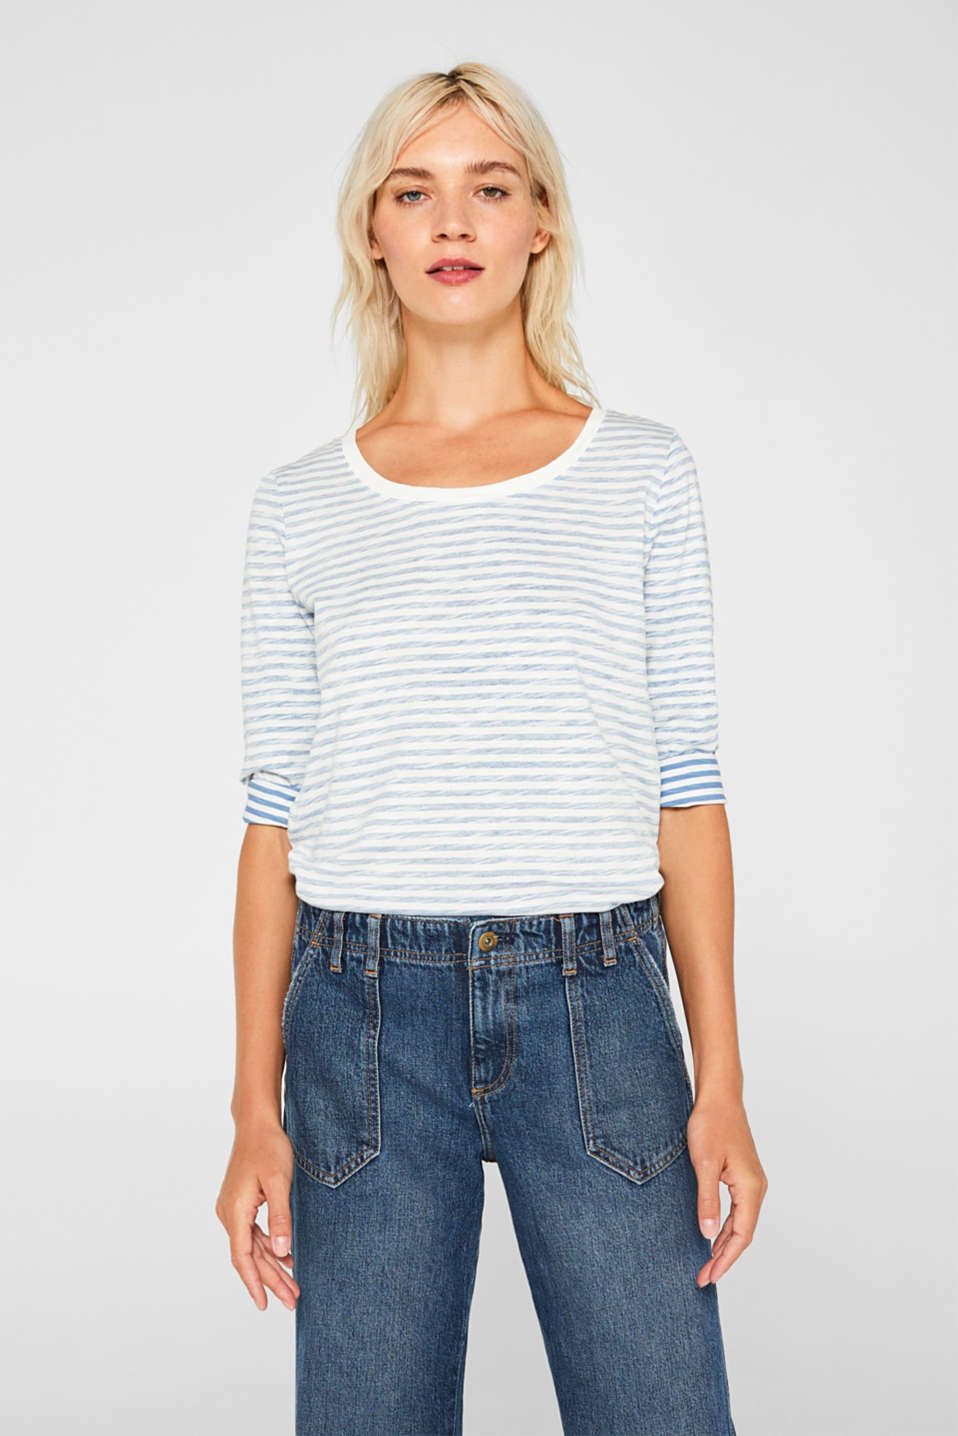 Esprit - Long sleeve top with an inside-out print, cotton